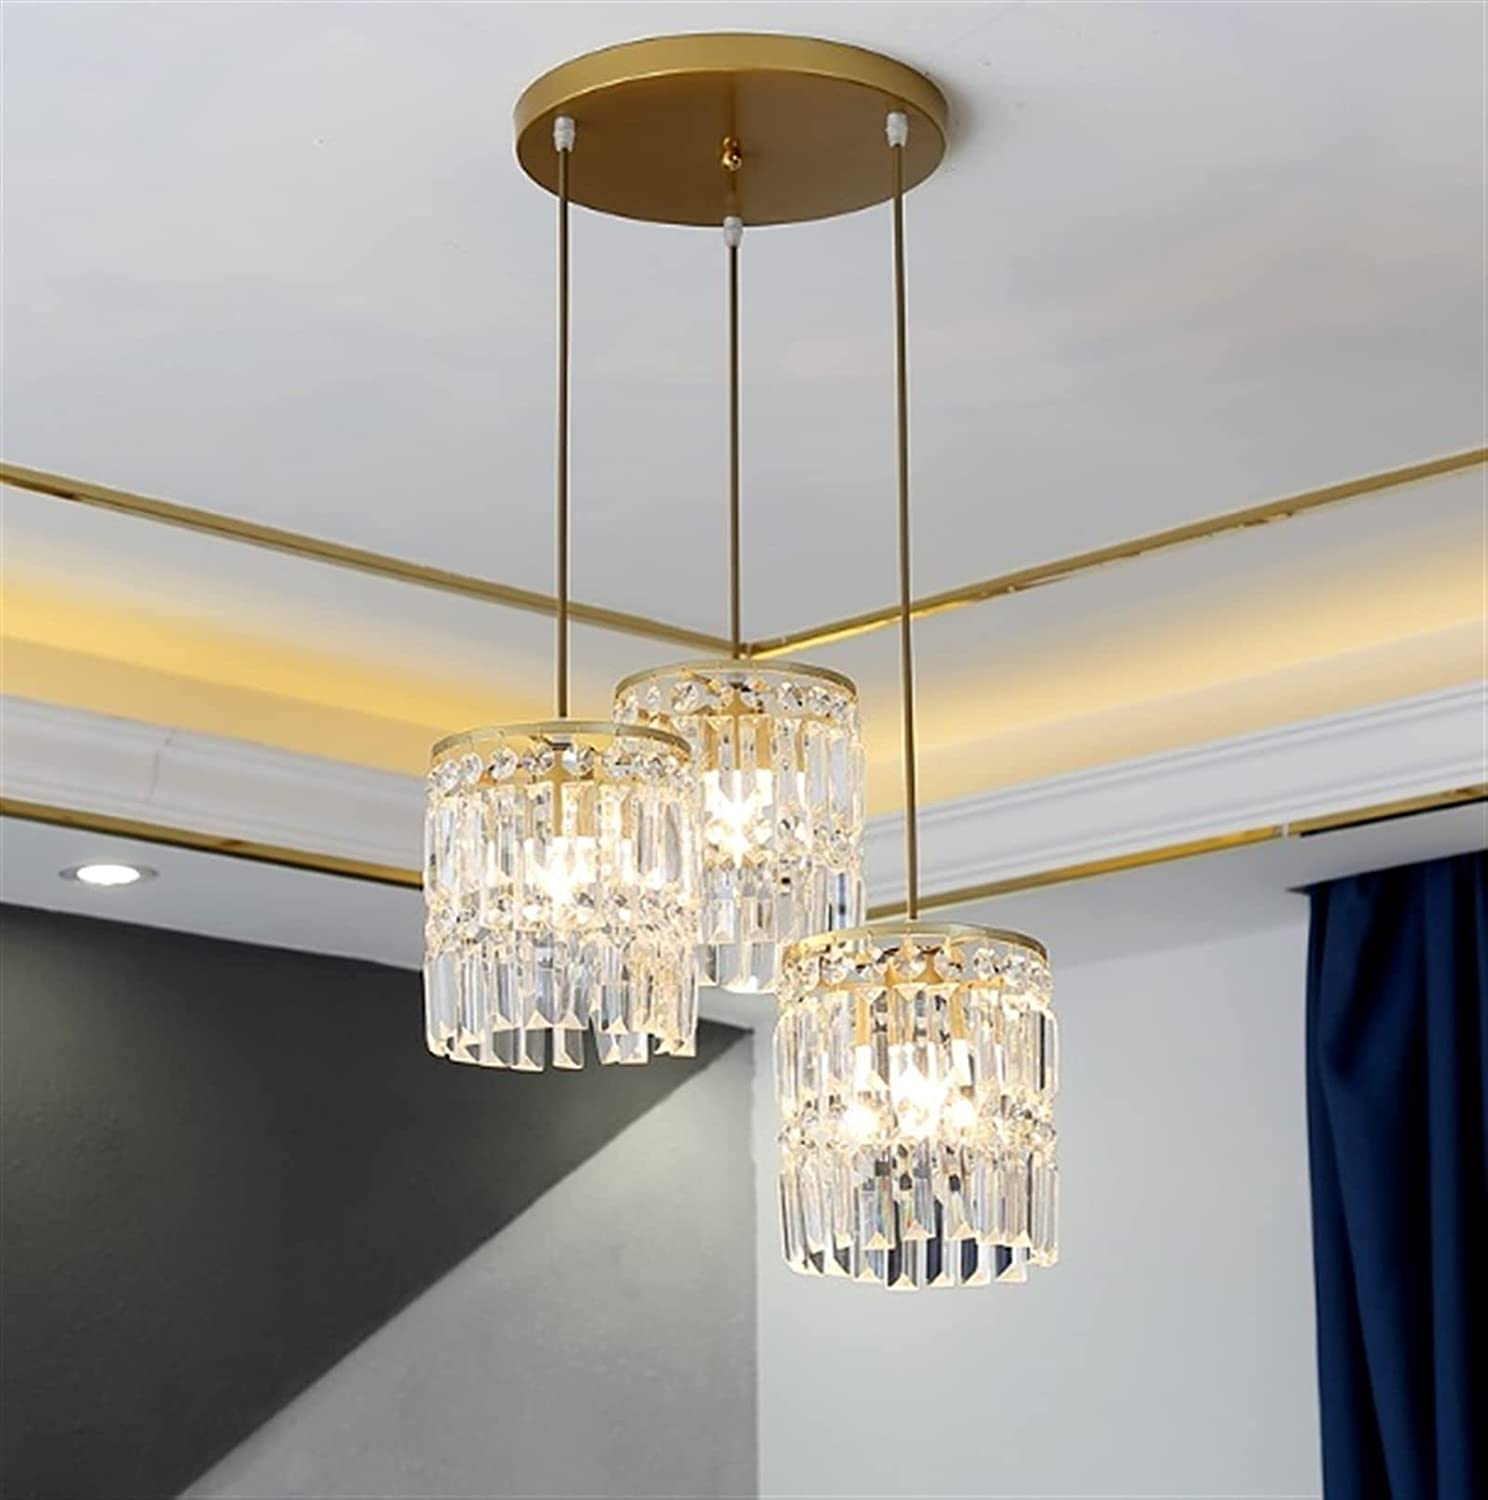 Chandelier Fixture Fresno At the price of surprise Mall Modern Raindrop Glass for Light Pendant Dinin